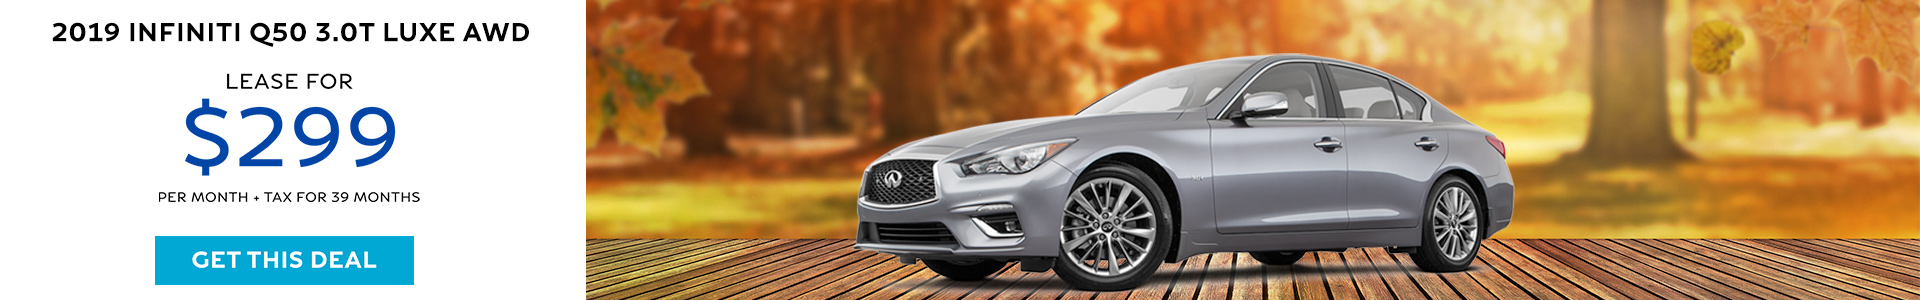 Q50 LUXE - Lease for $299